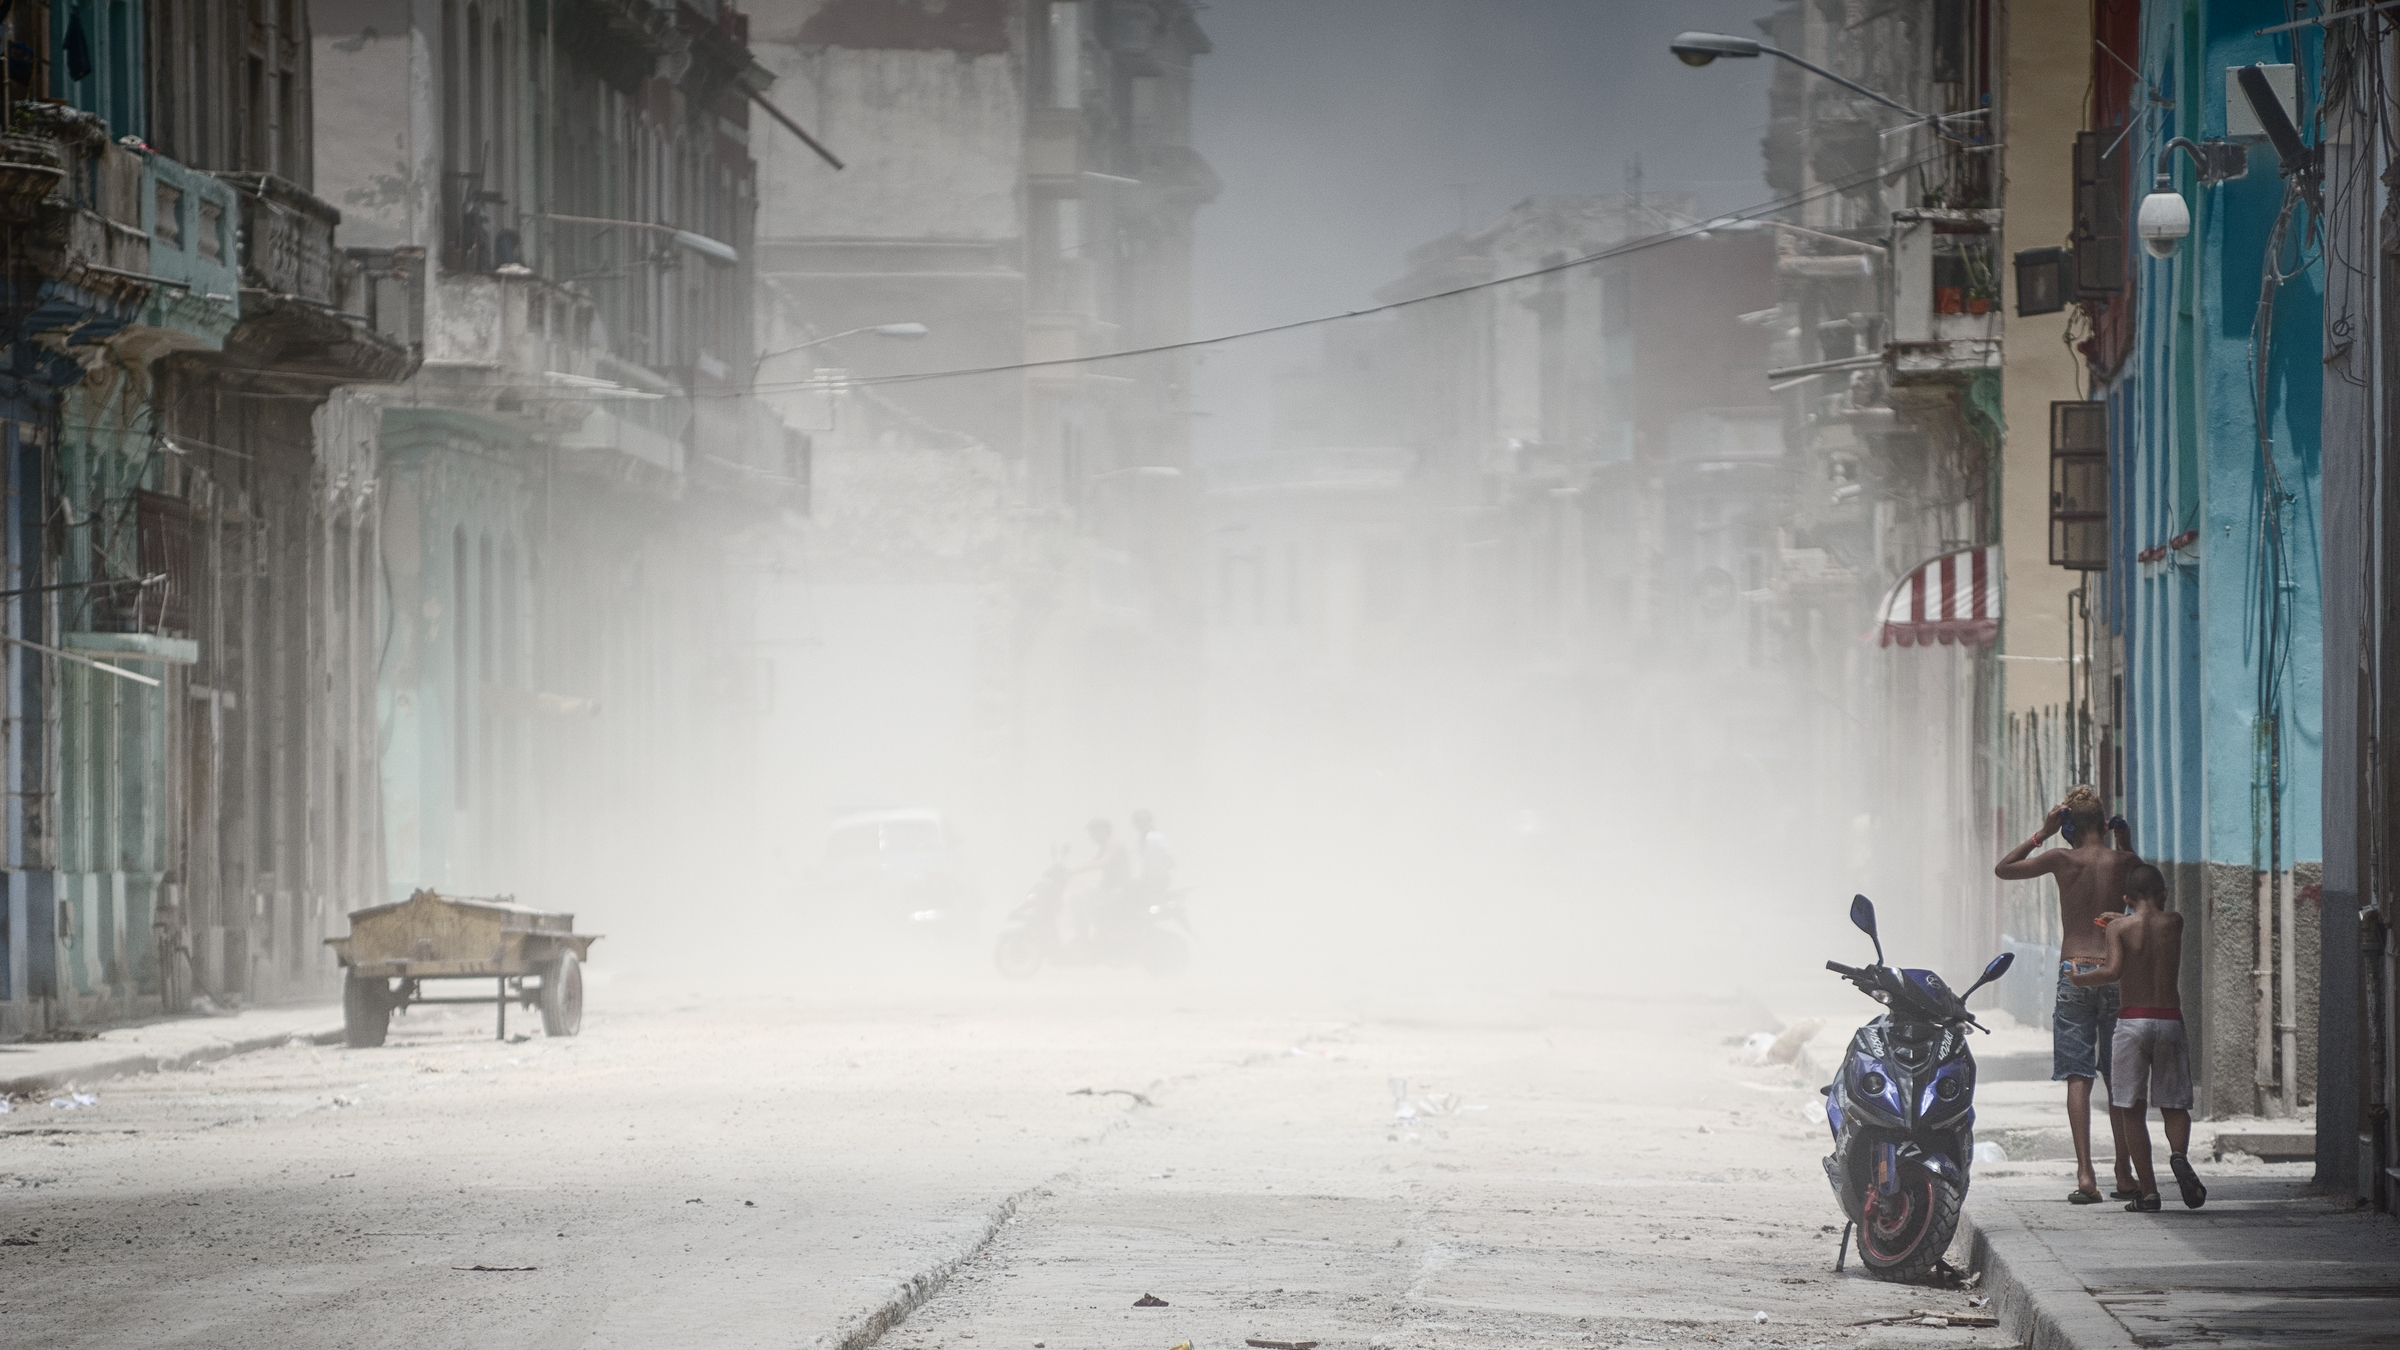 street and dust